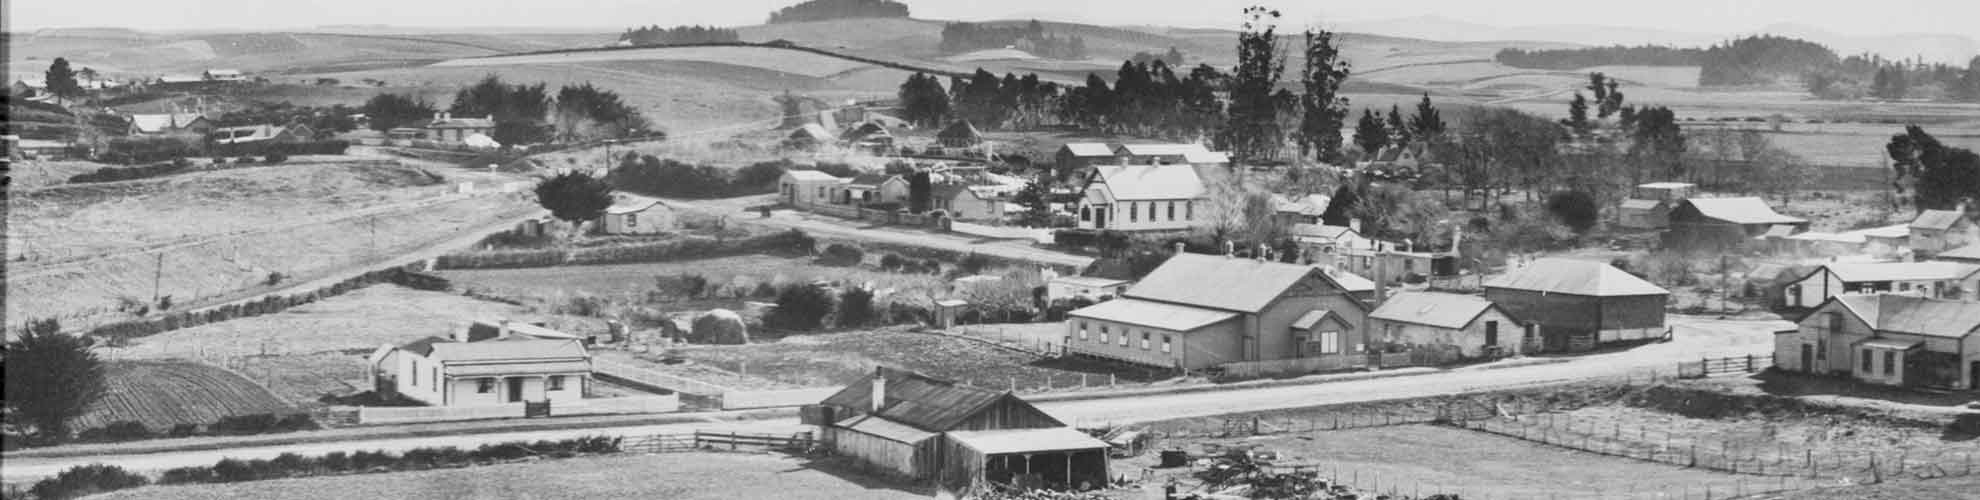 Enfield. Collection of the Waitaki District Archive. Id 100493